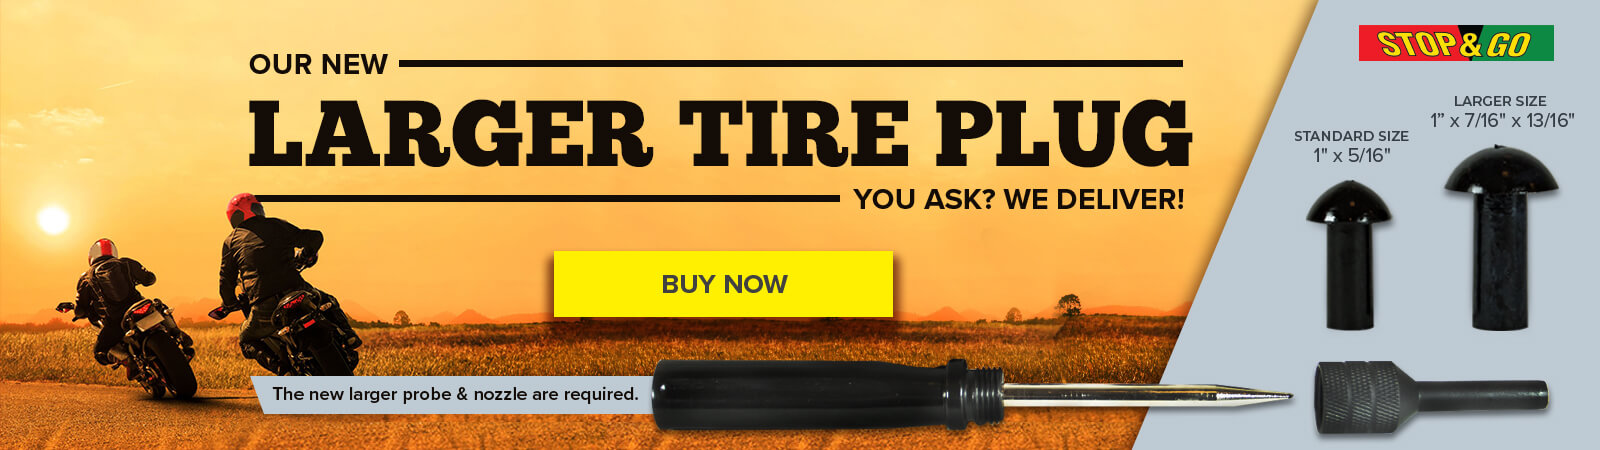 Larger Tire Plug